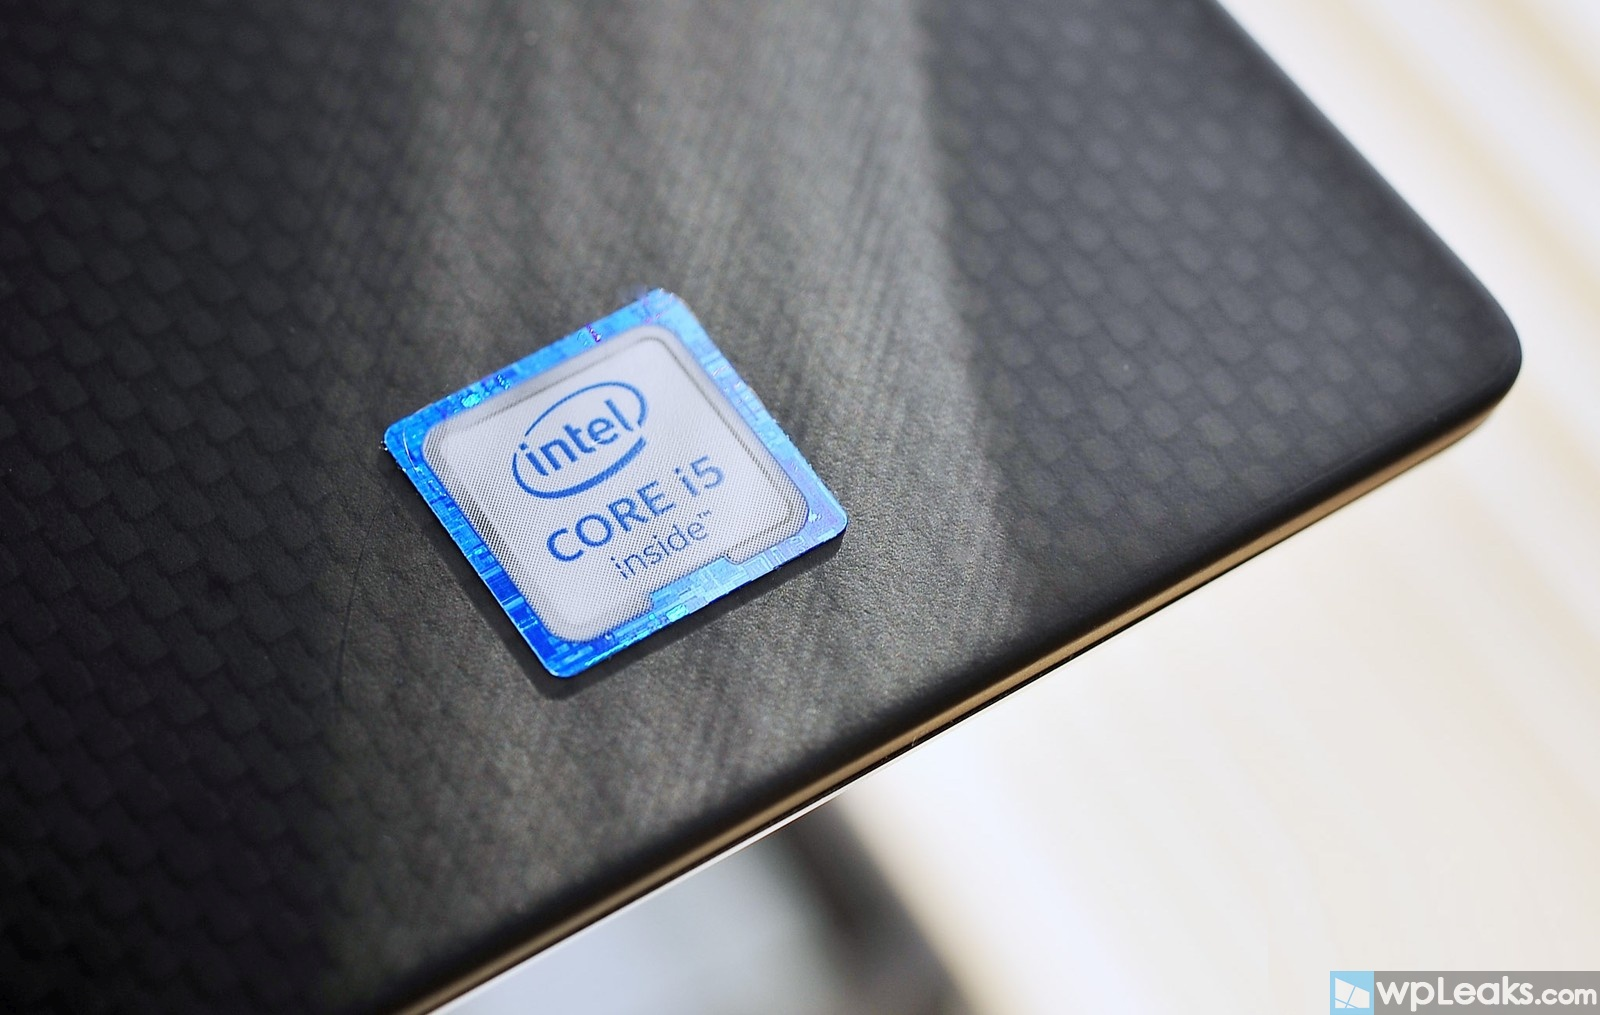 intel-core-logo-cropped